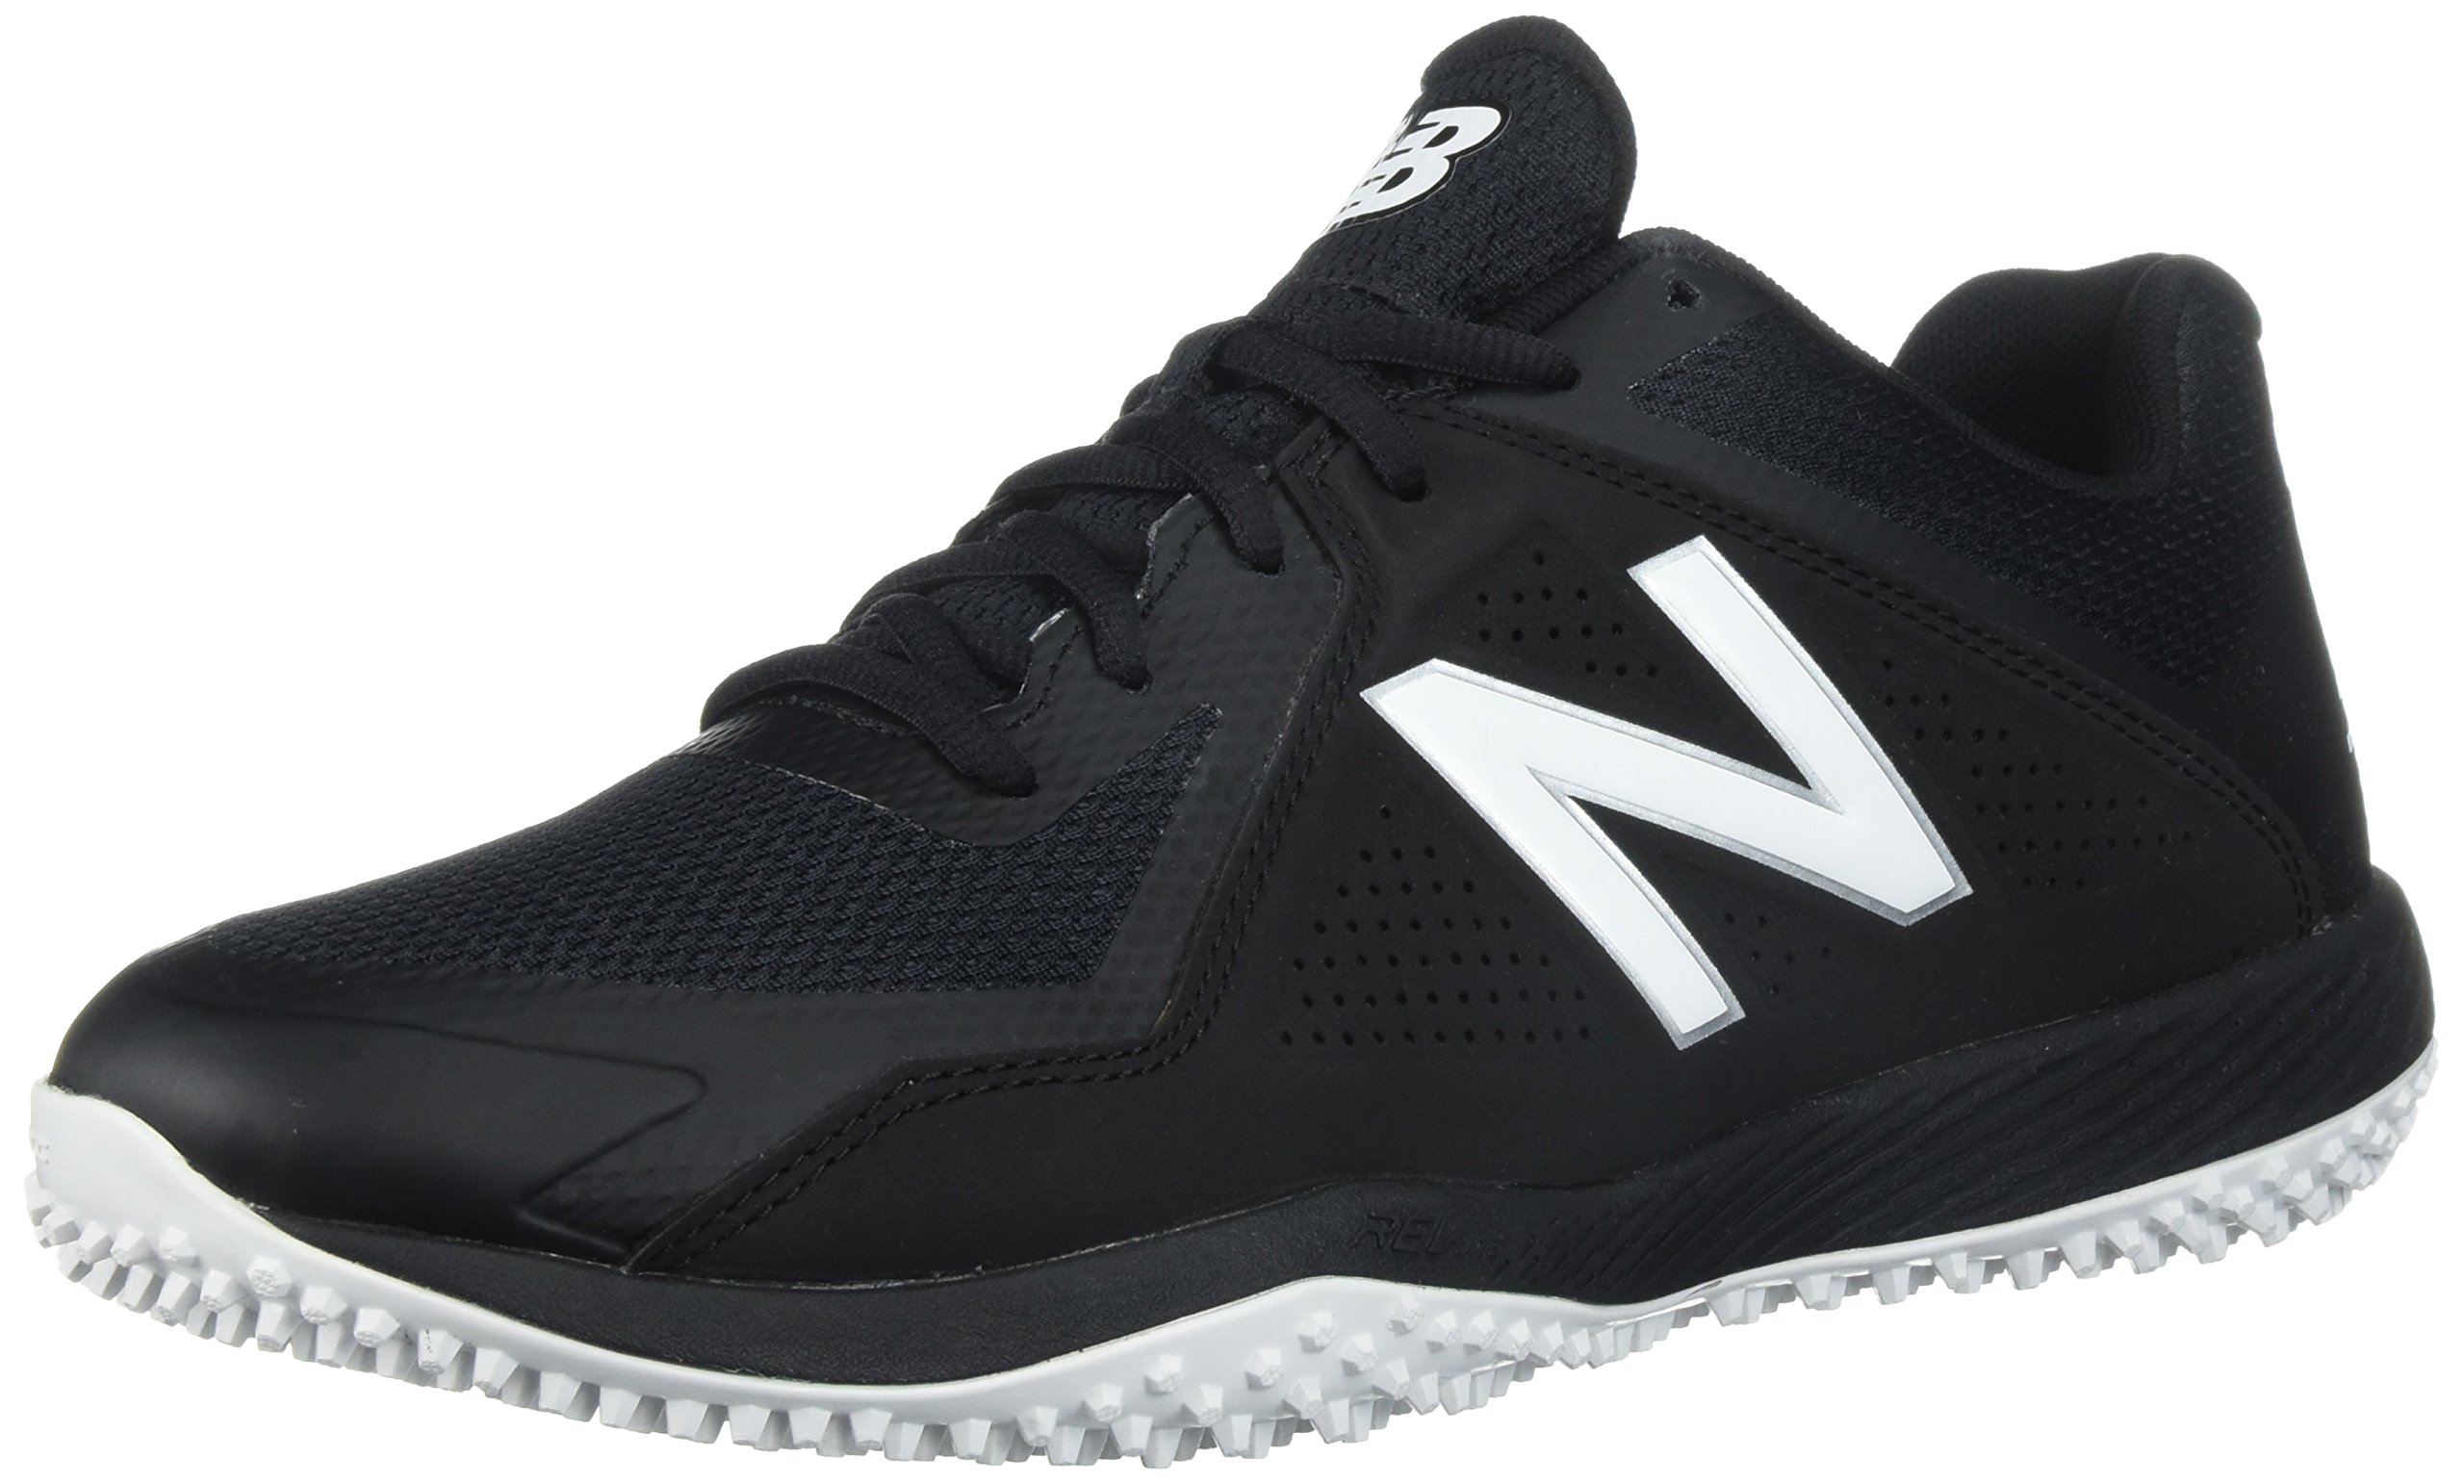 New Balance Men's T4040v4 Turf Baseball Shoe, Black, 12 D US